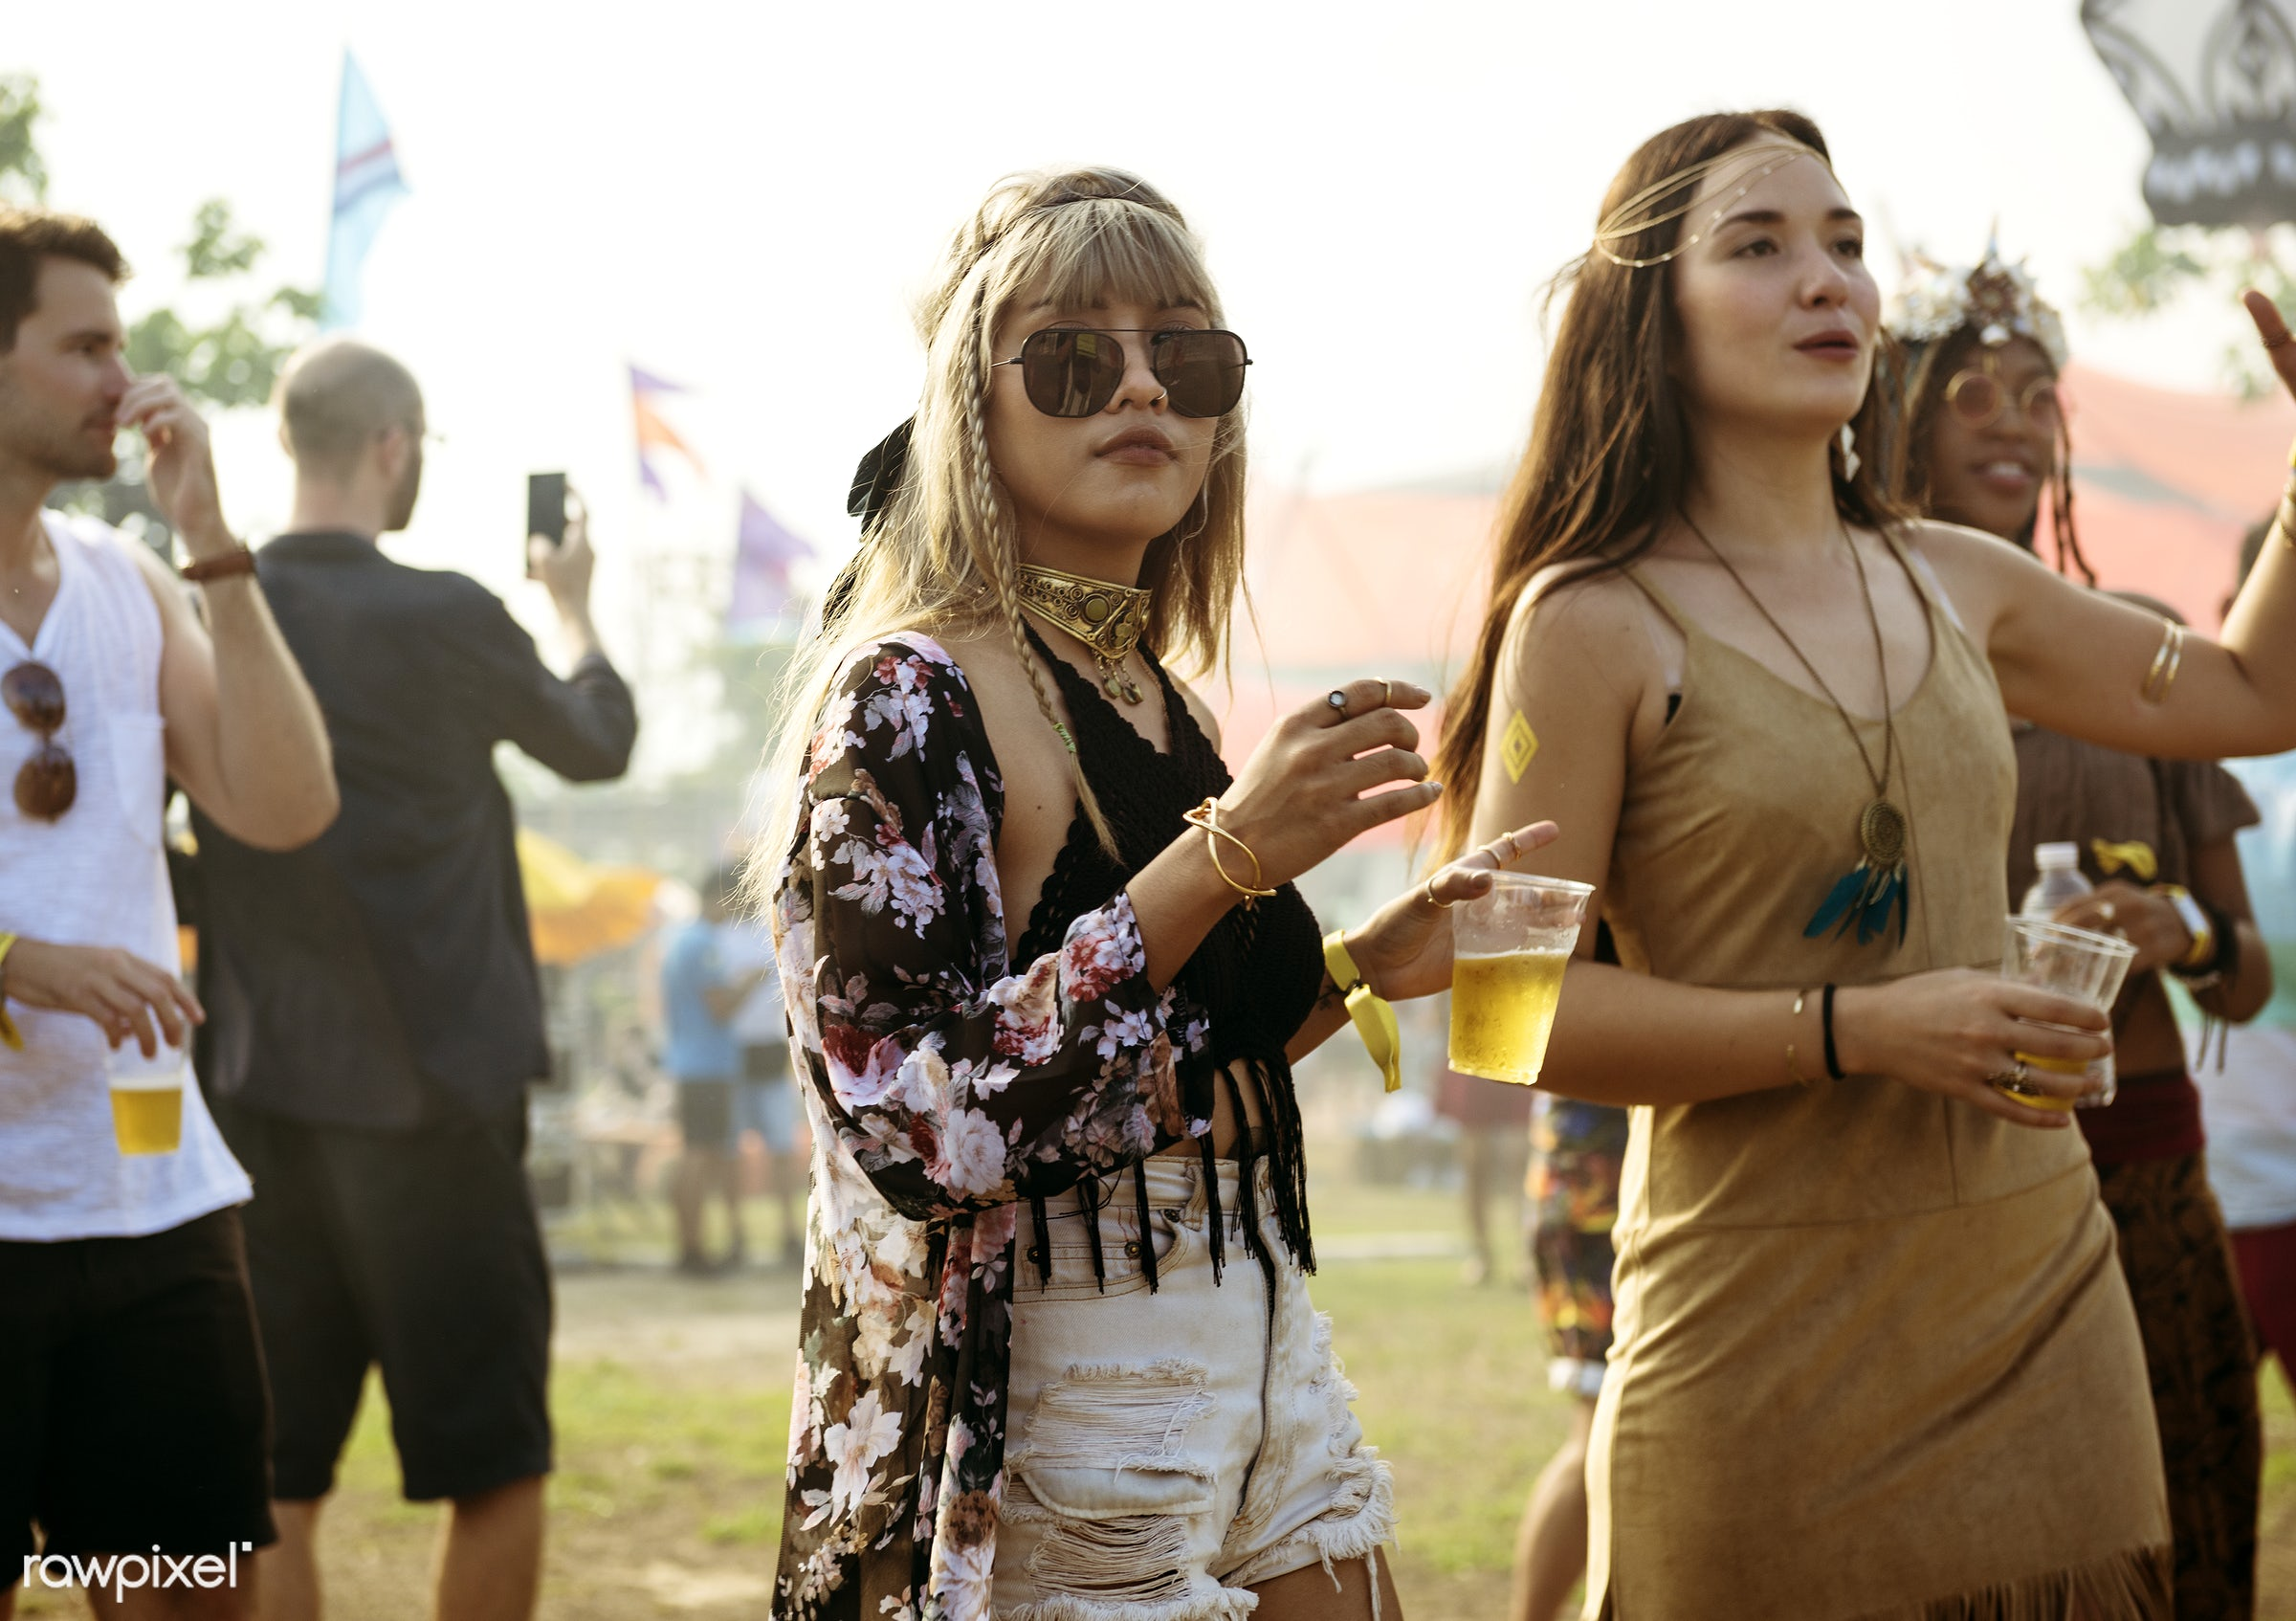 Diverse group of people enjoying a road trip and festival - drink, alcohol, beer, music, man, activity, adult, adults,...